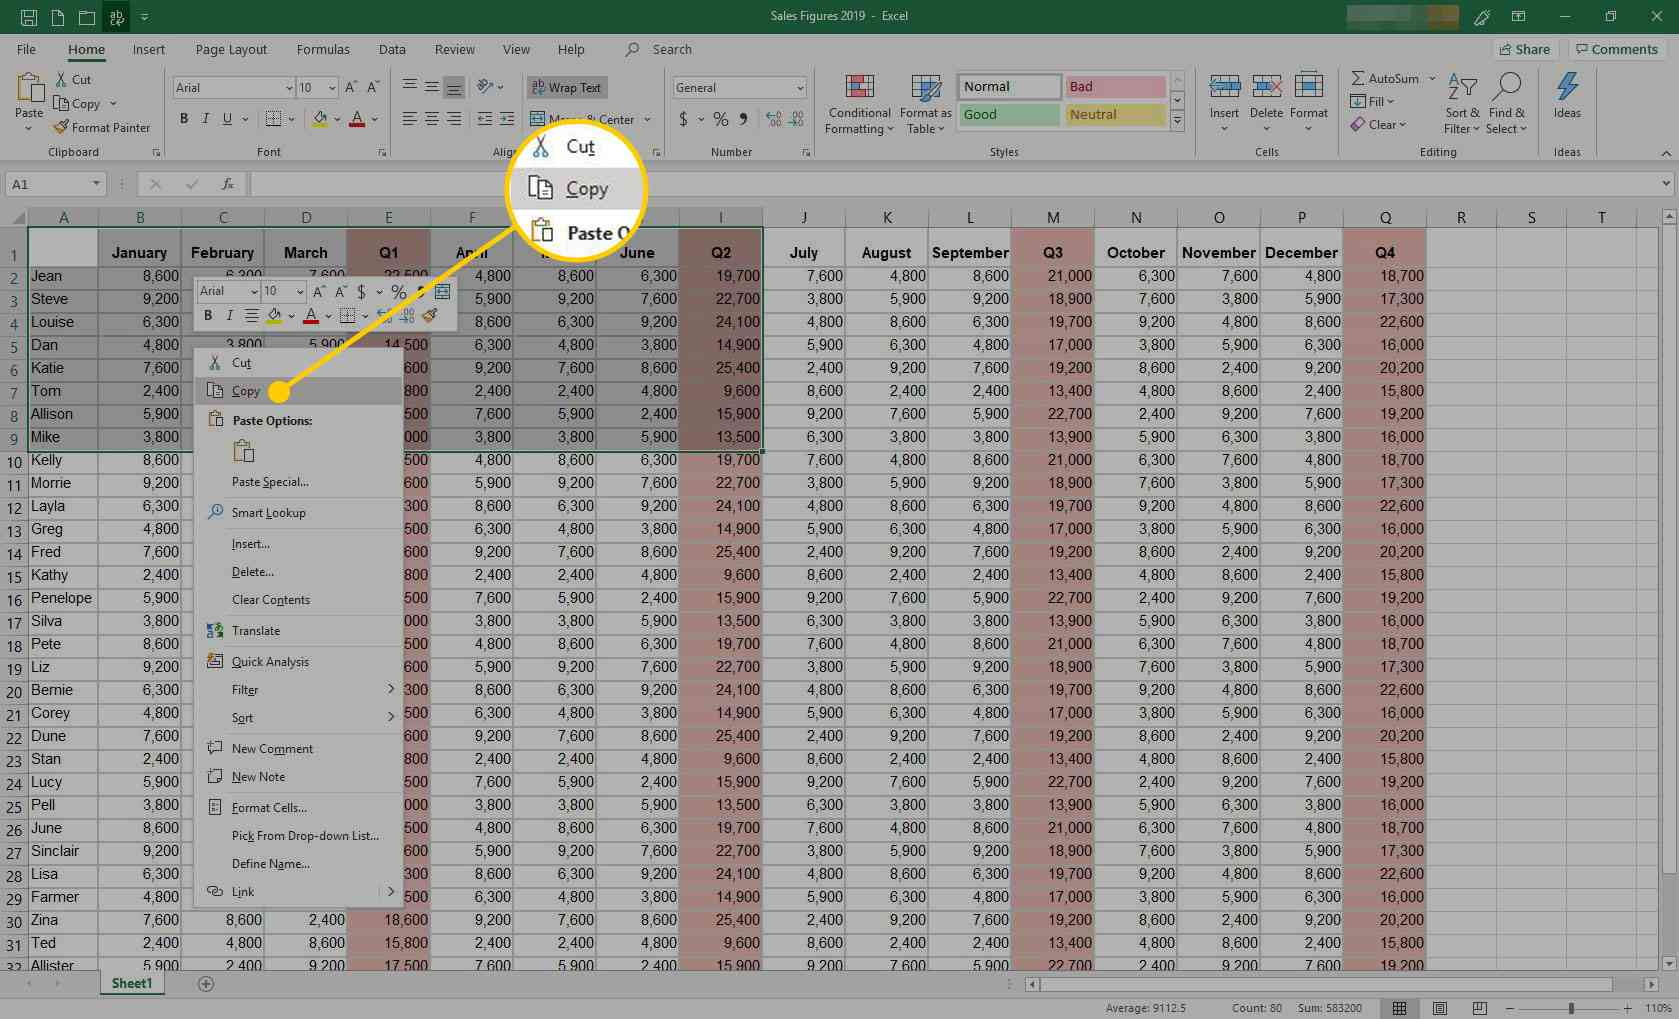 Excel with the Copy command highlighted